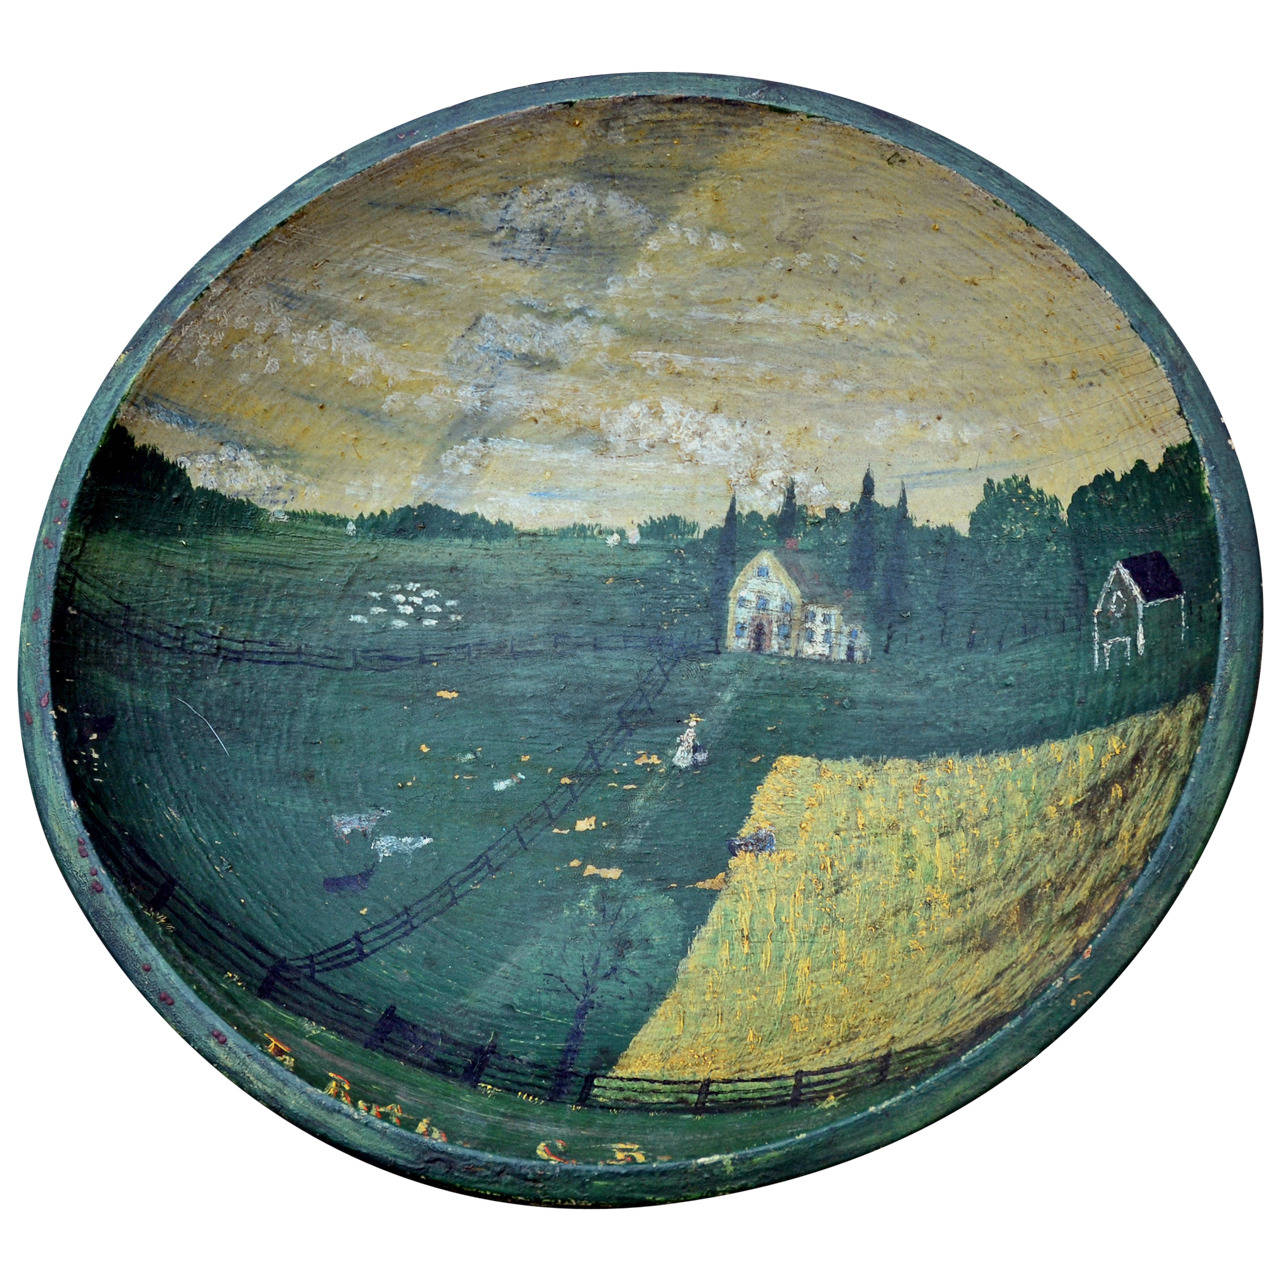 Folk Art Bowl with Tornado Landscape, circa 1850